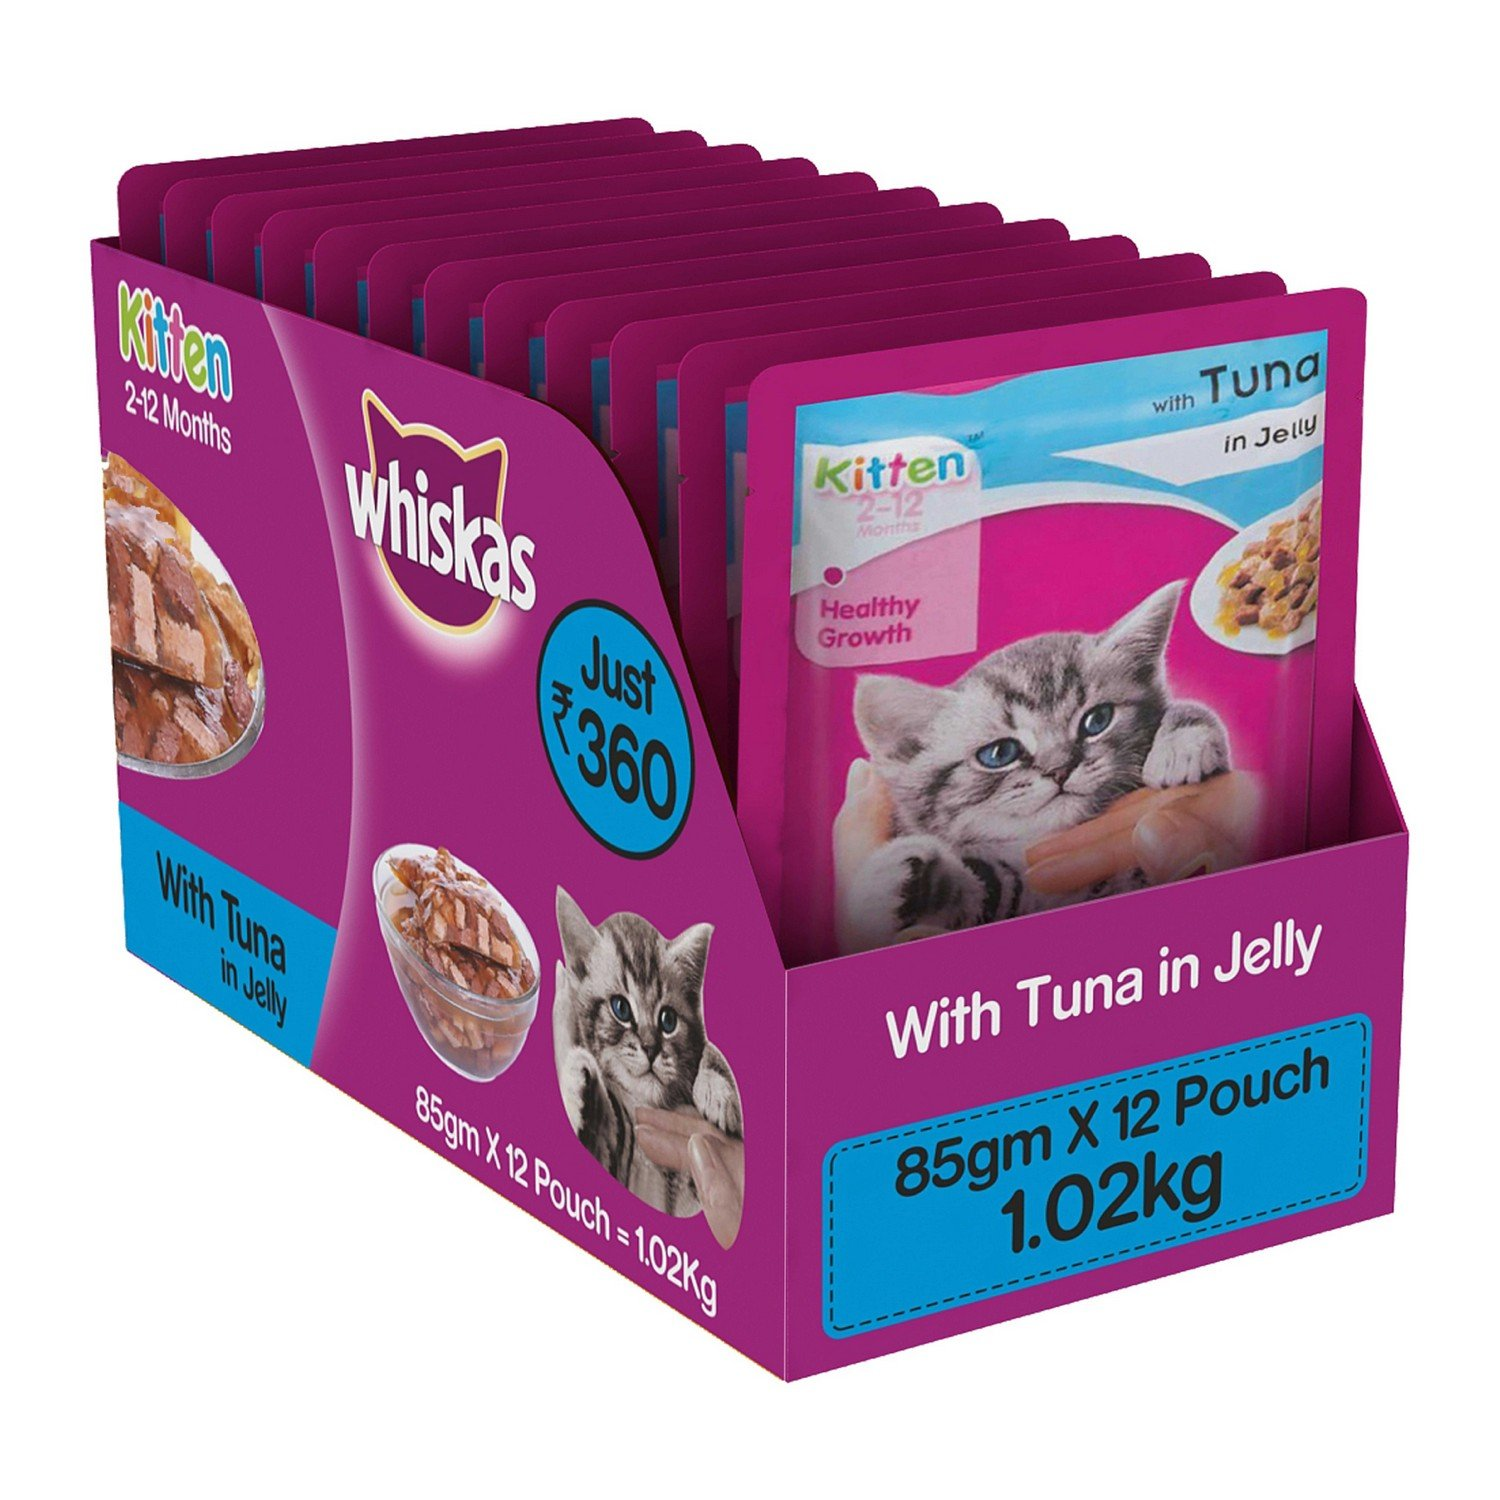 Whiskas Wet Meal cat food